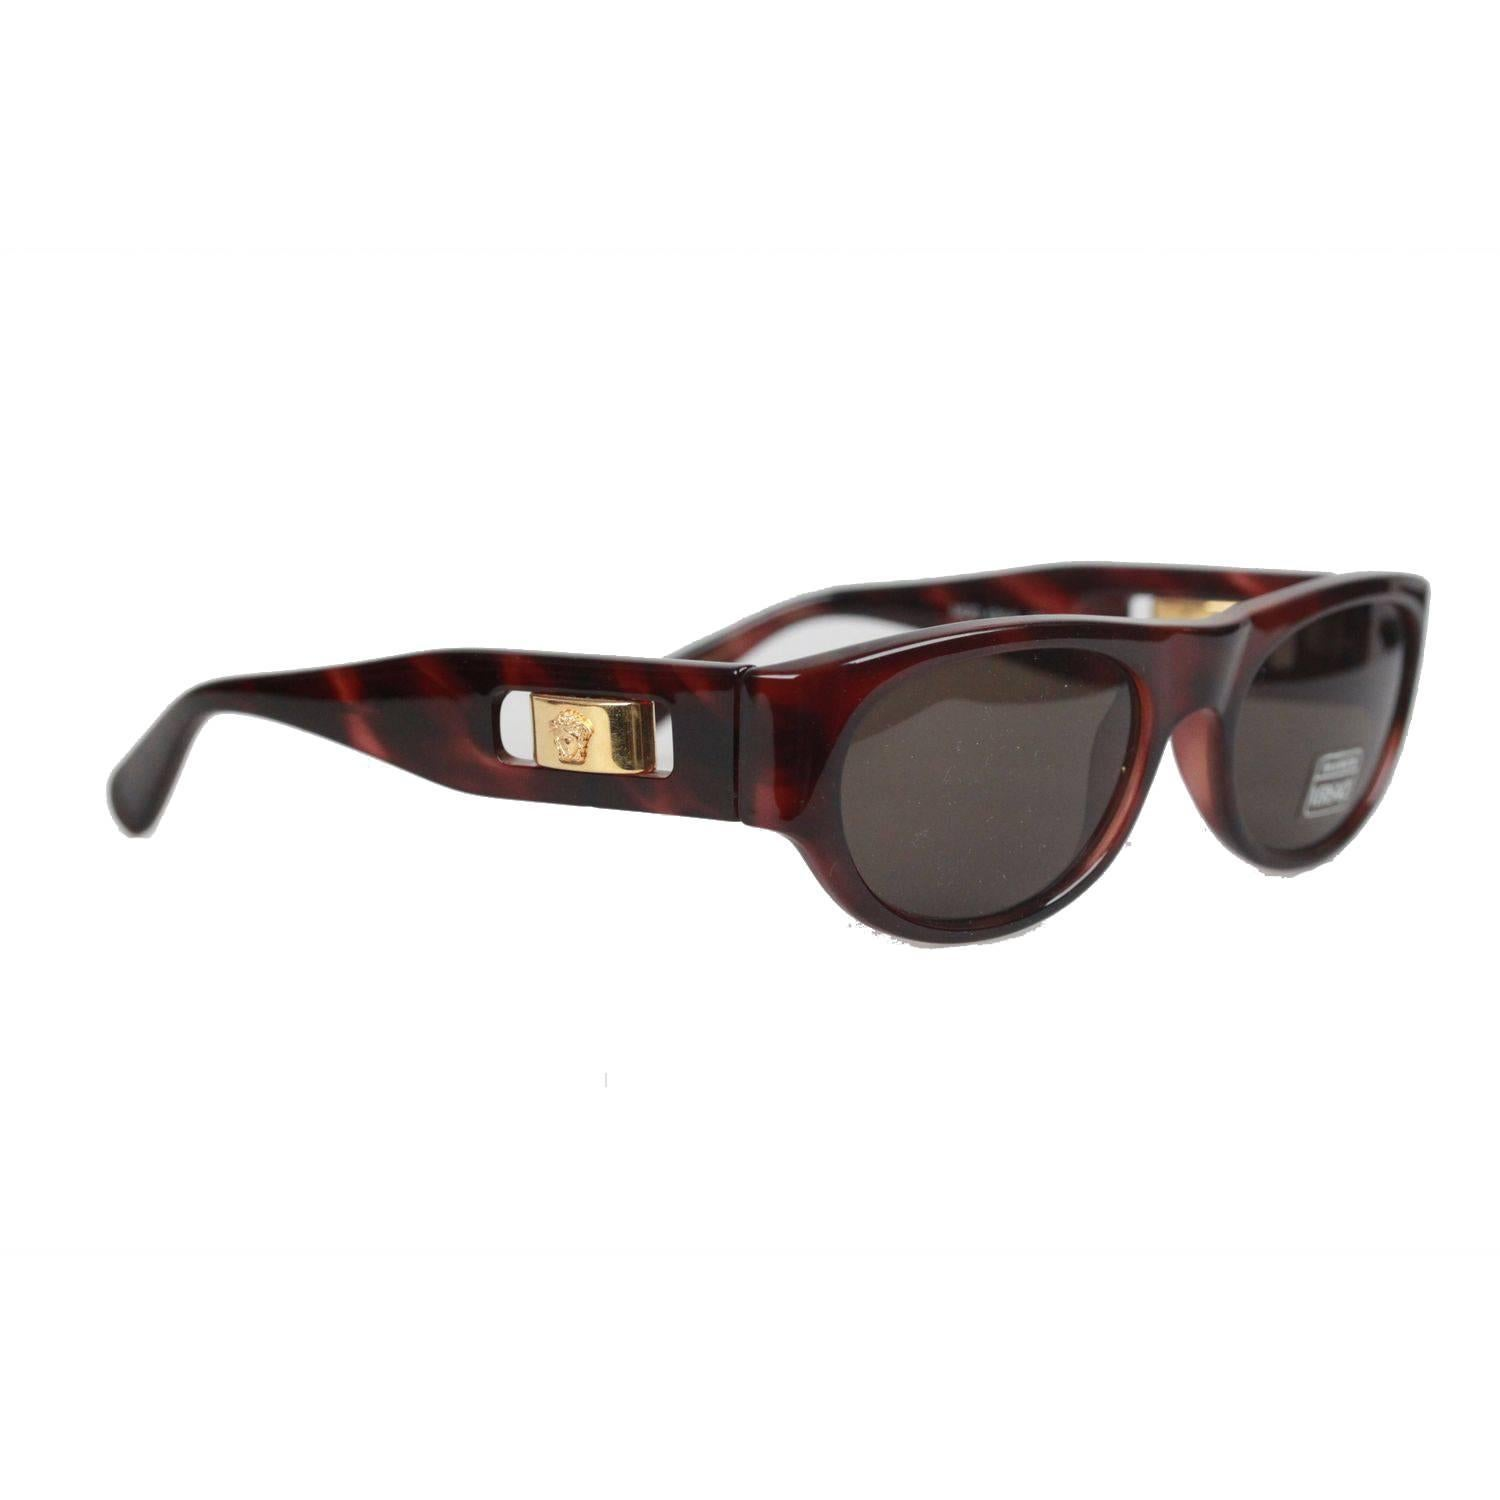 7322f604da GIANNI VERSACE MEDUSA Brown Sunglasses 474 A Col 900 52mm NOS For Sale at  1stdibs